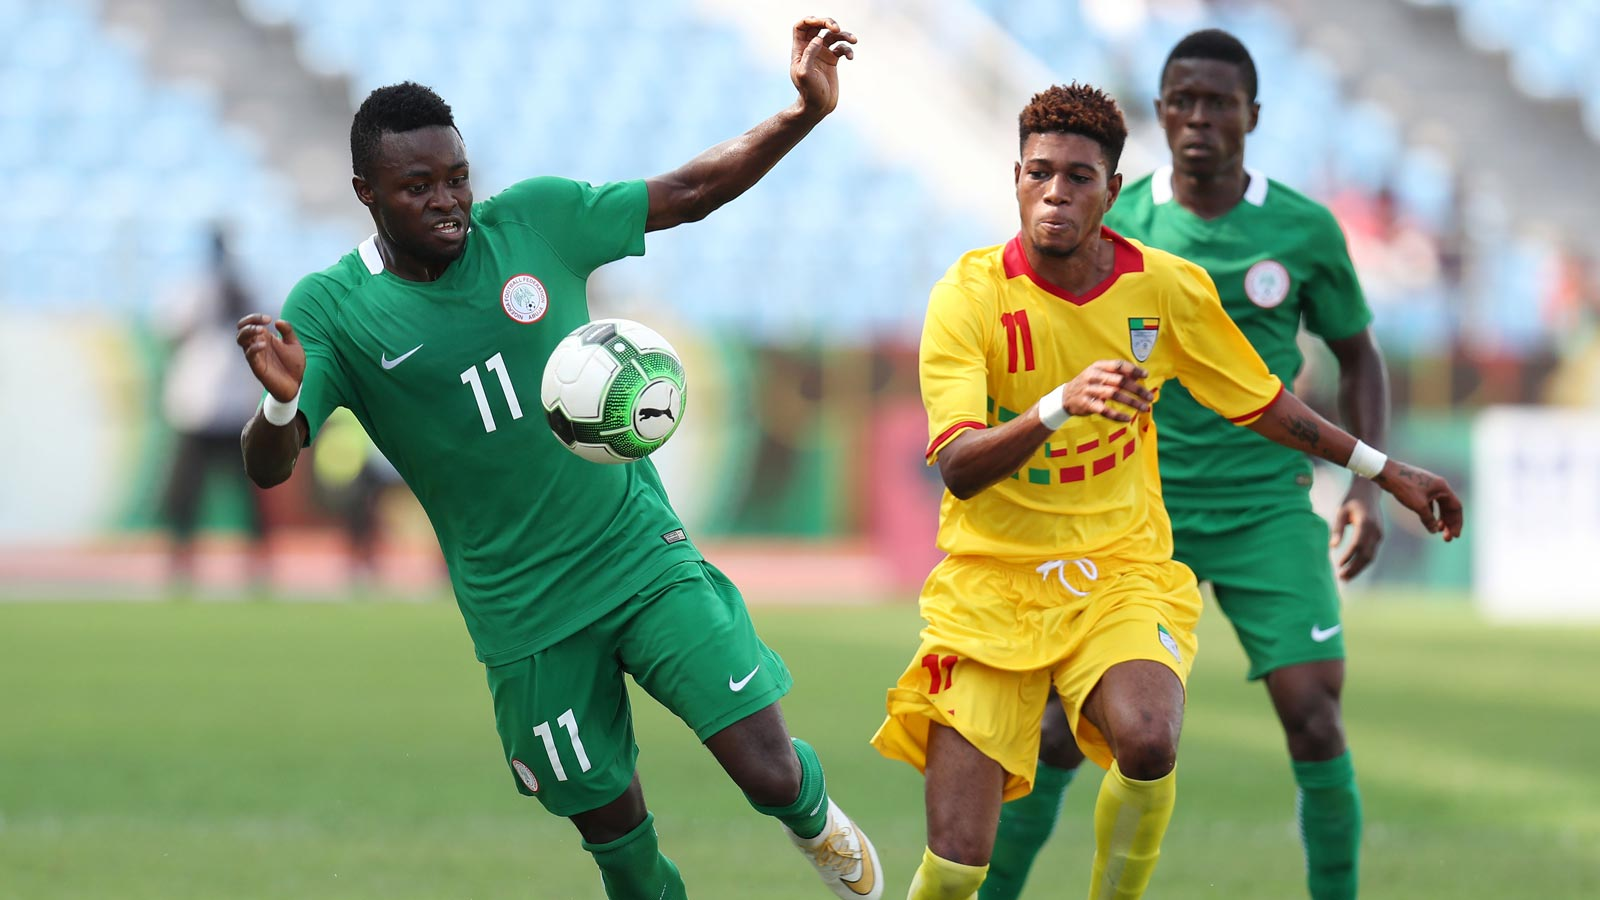 2017 WAFU Nations Cup: Rabiu Ali's solitary goal sends Nigeria into final